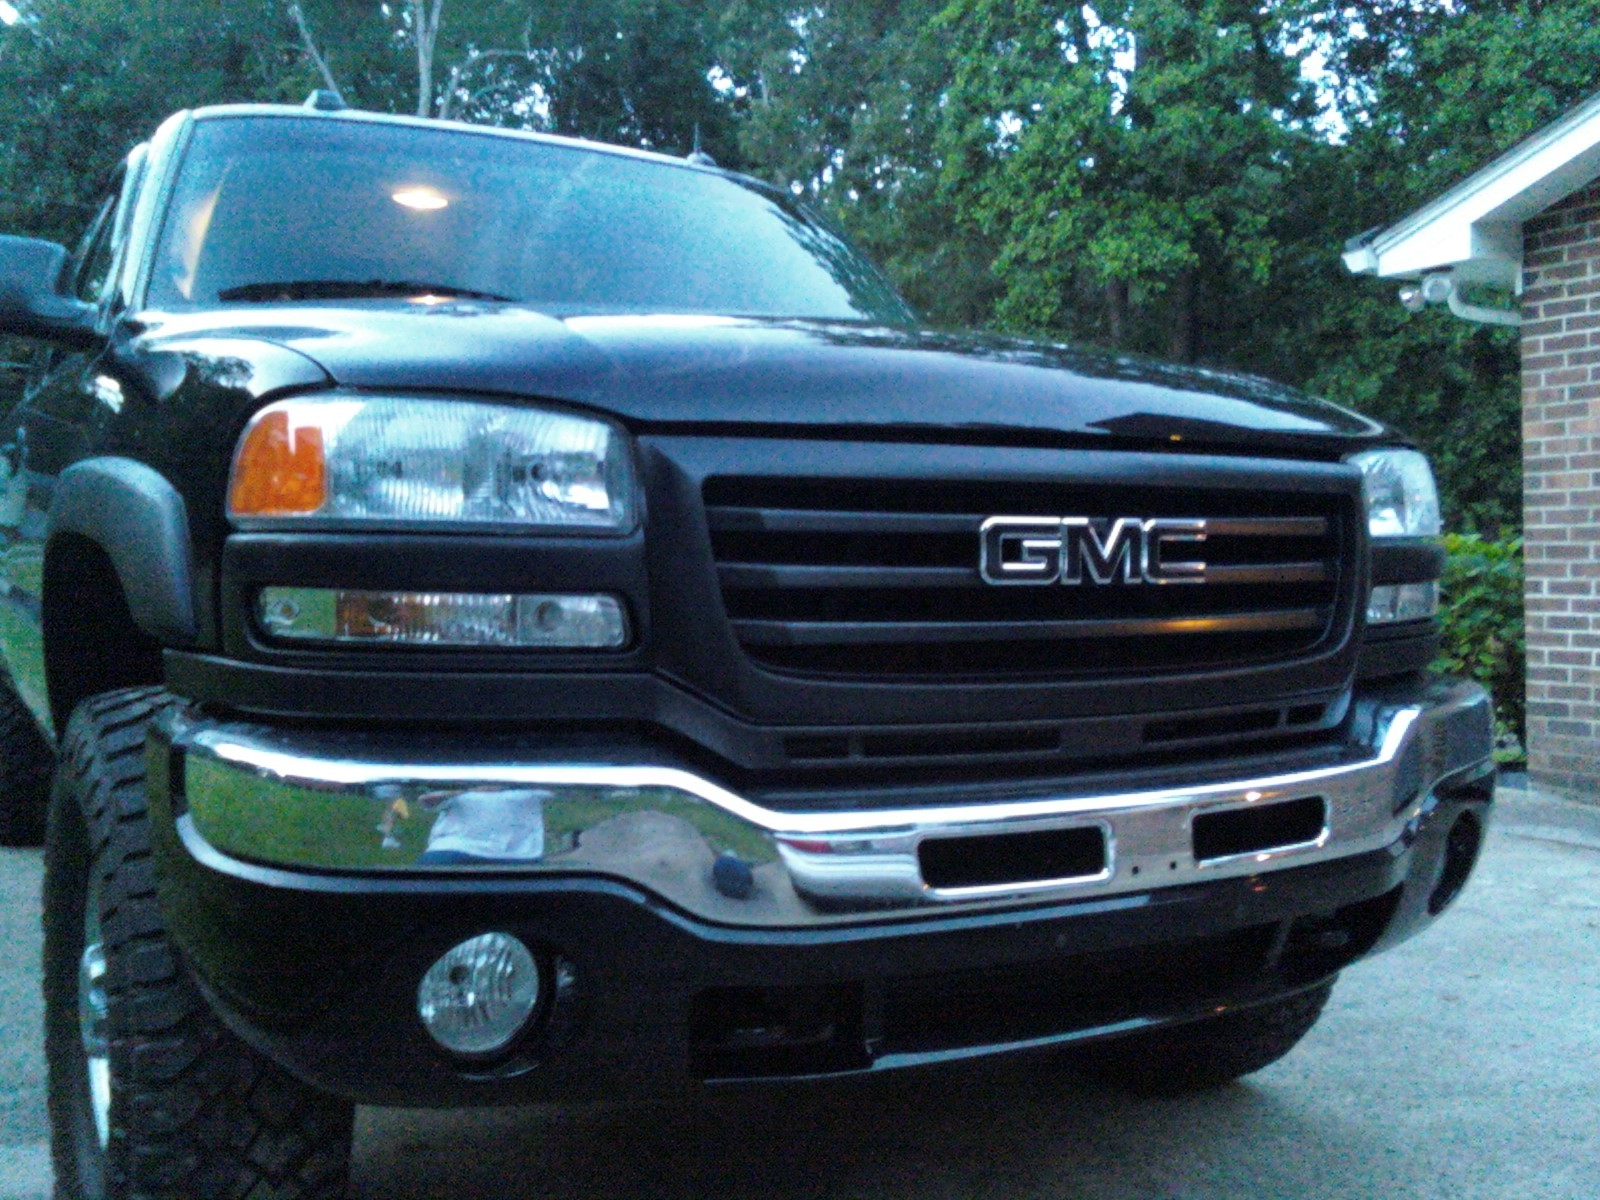 Thebigredz71 2004 Gmc 2500 Hd Extended Cab Specs Photos